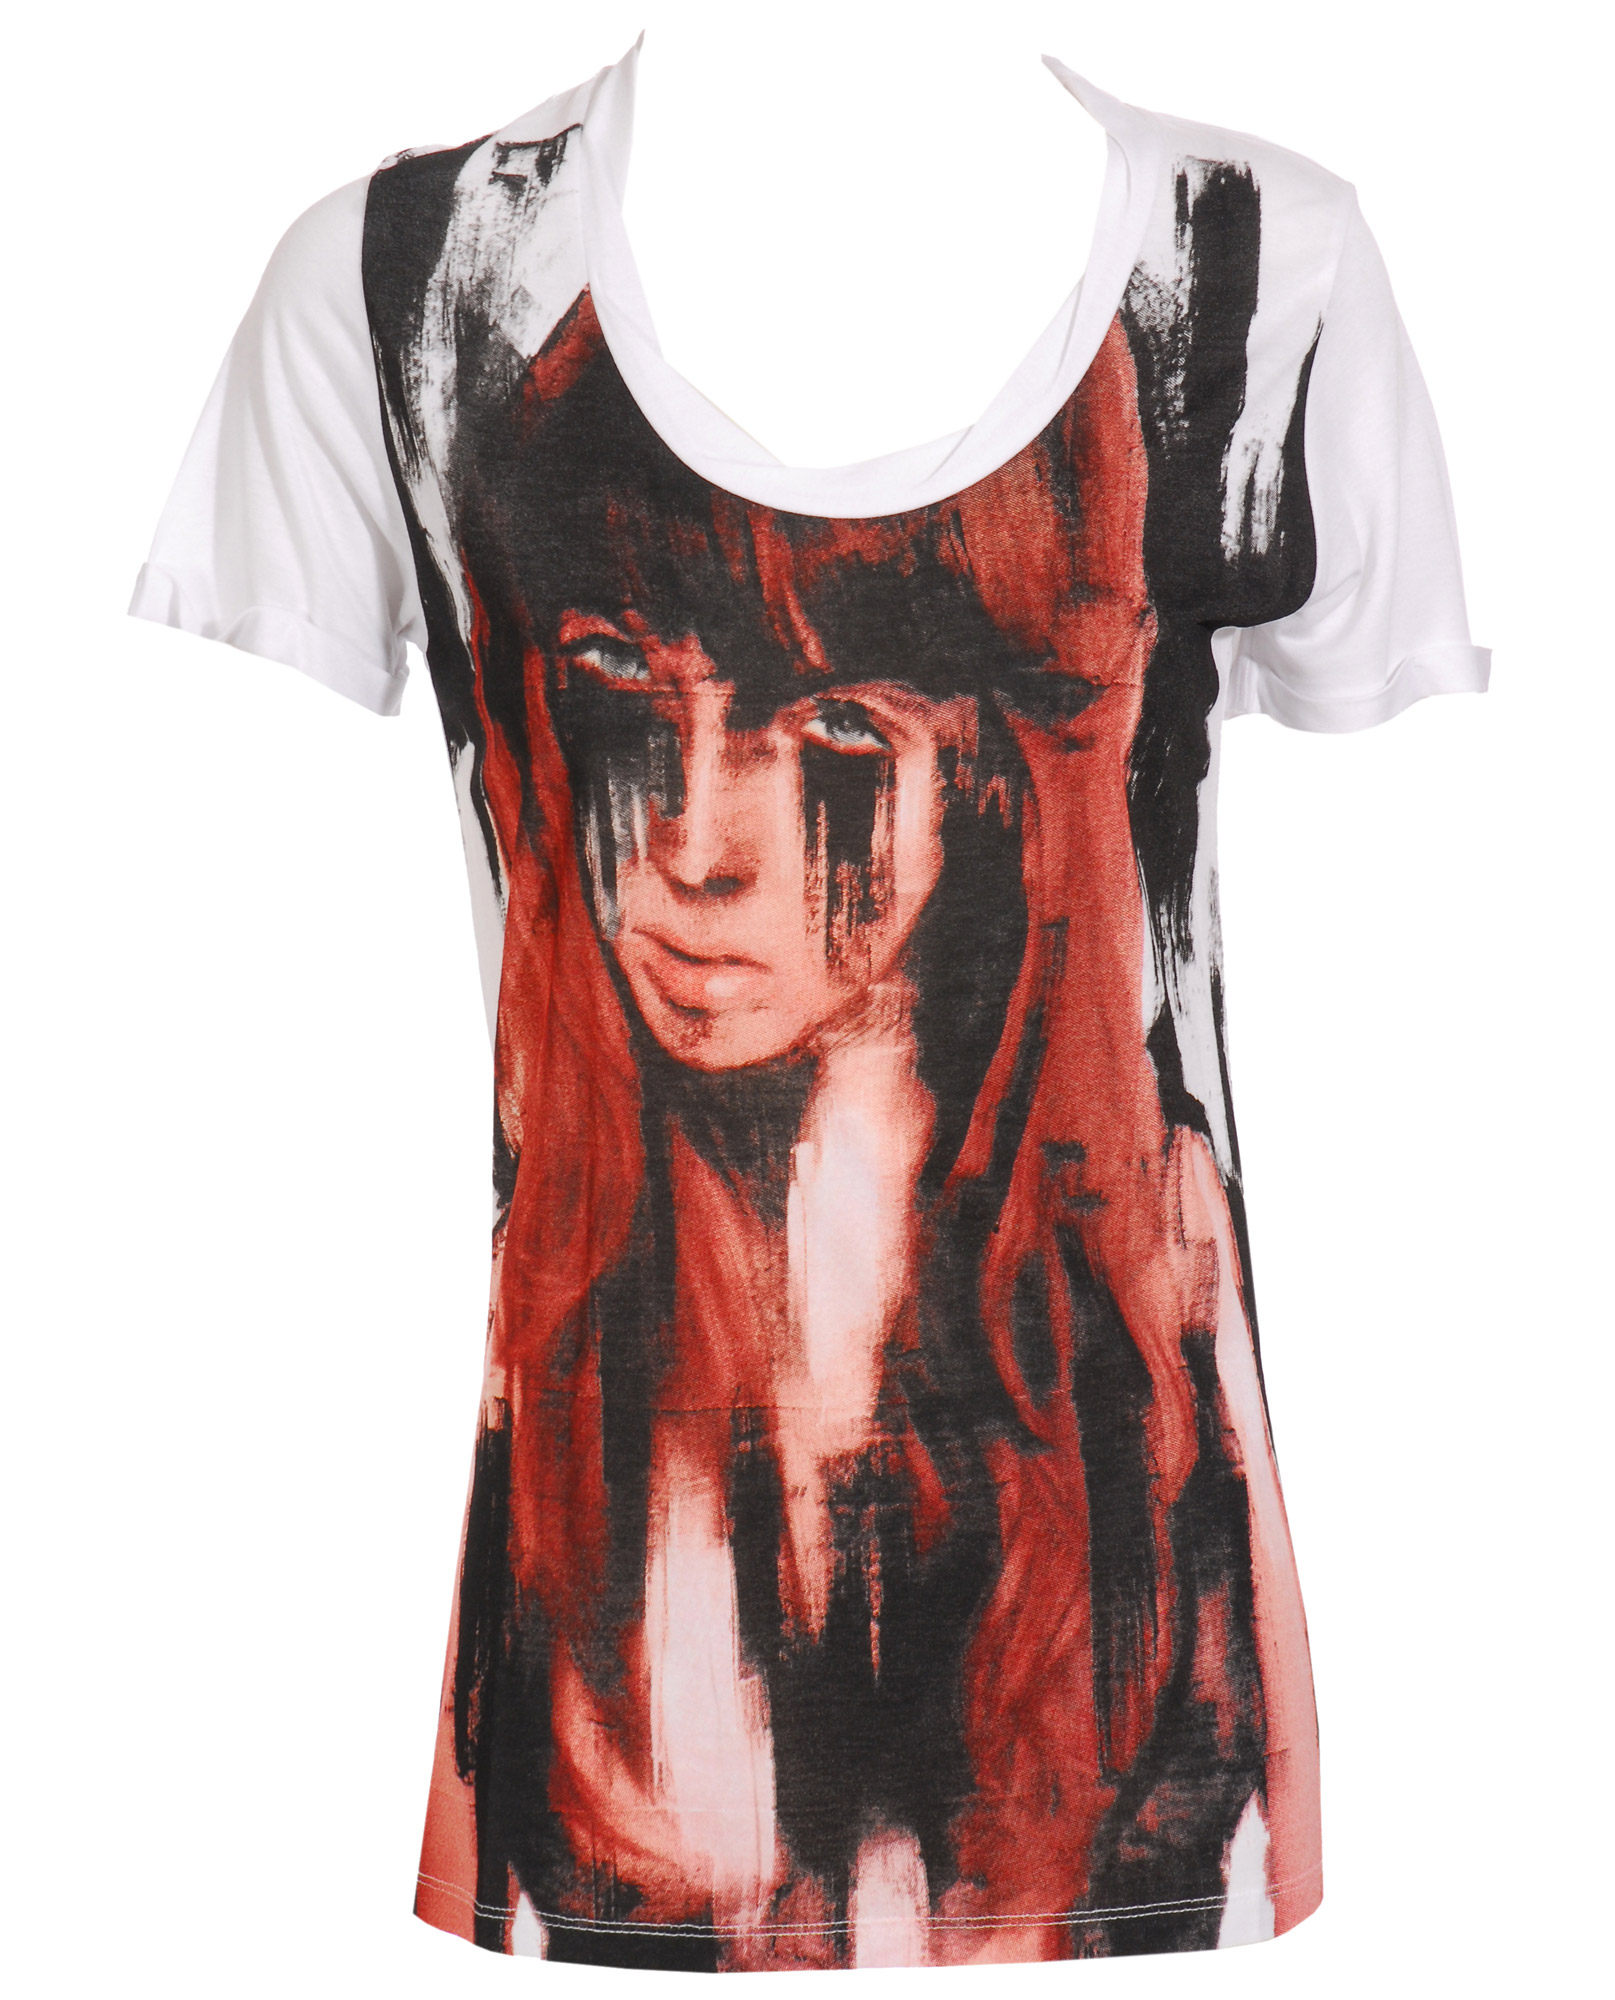 Beatrice boyle bamboo t shirt with howl red head print in for Bamboo t shirt printing